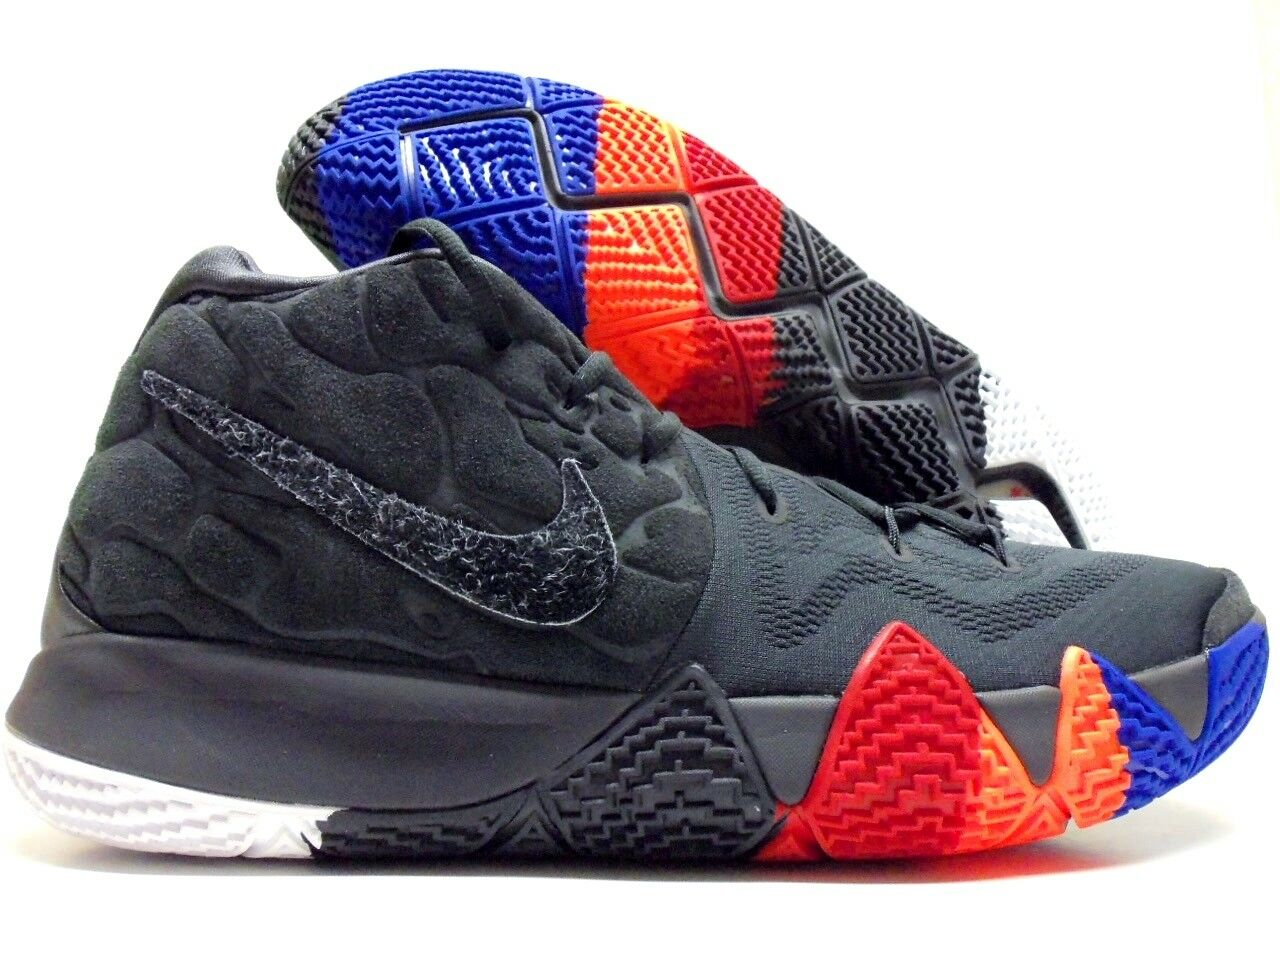 c448de951770aa Nike Kyrie 4 Year of The Monkey Mens 943806-011 Anthracite Grey ...